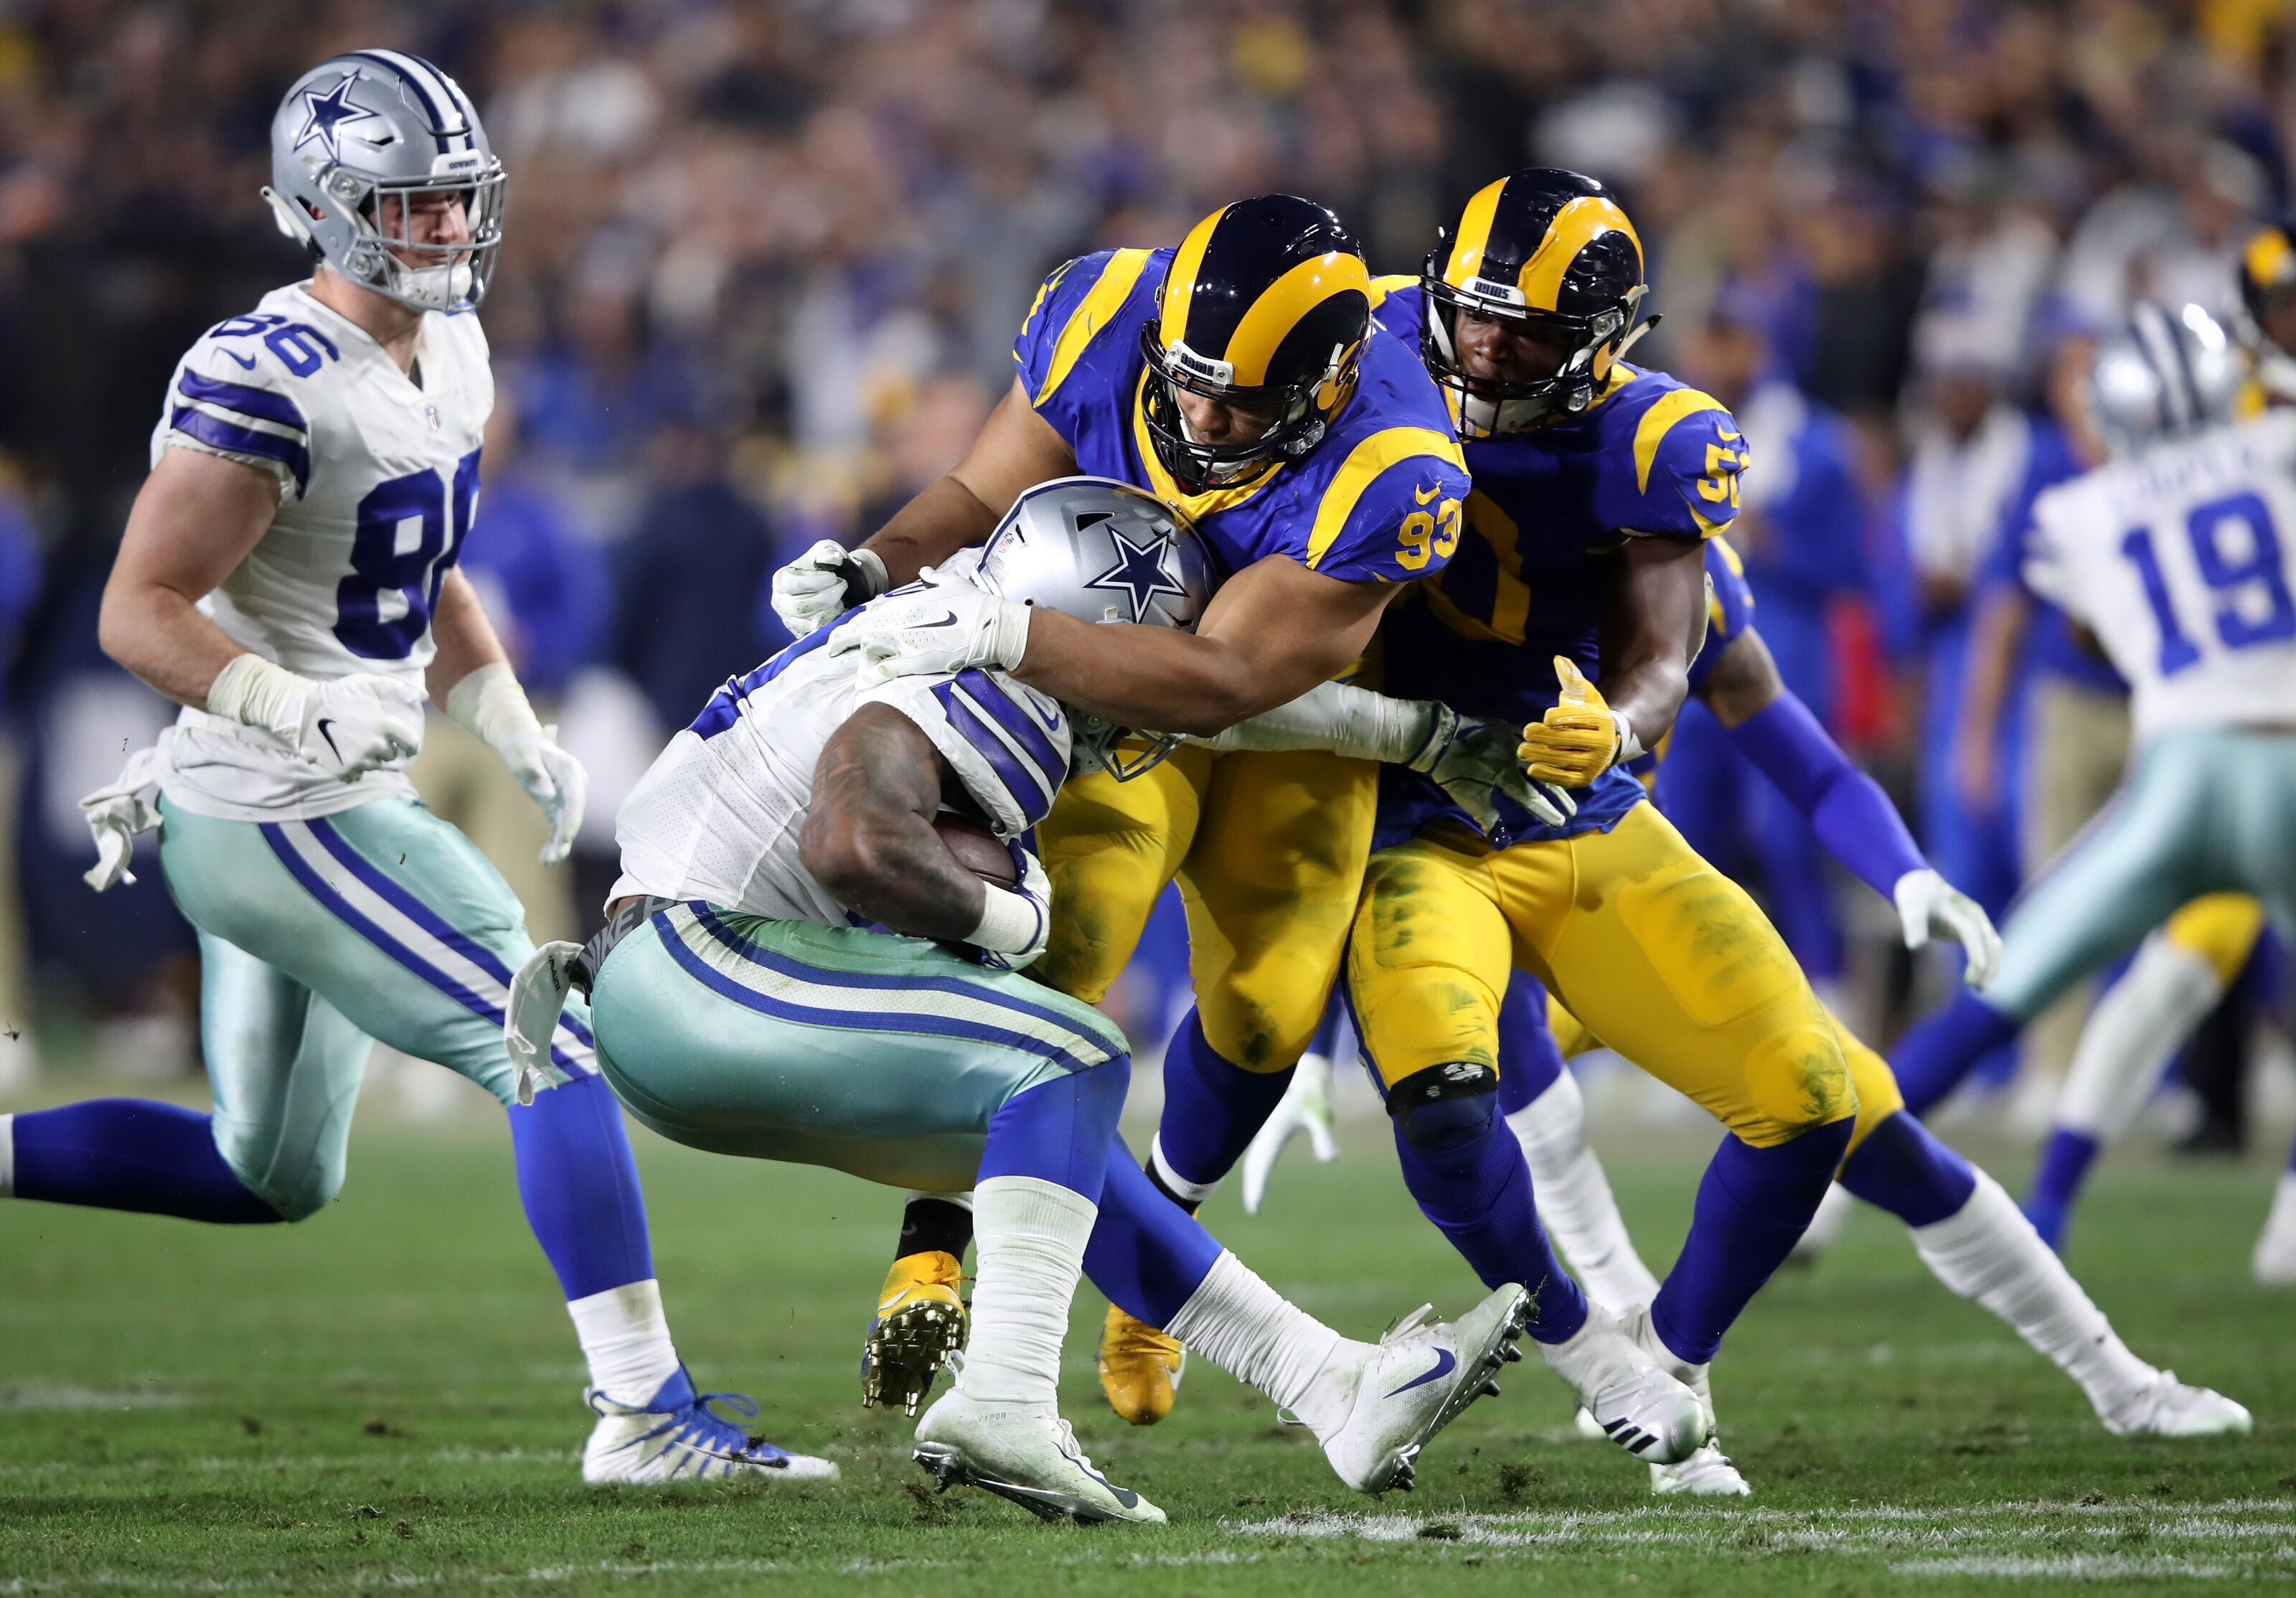 2daa68eec23 NFL Free Agency 2019: Best remaining players littered with former stars